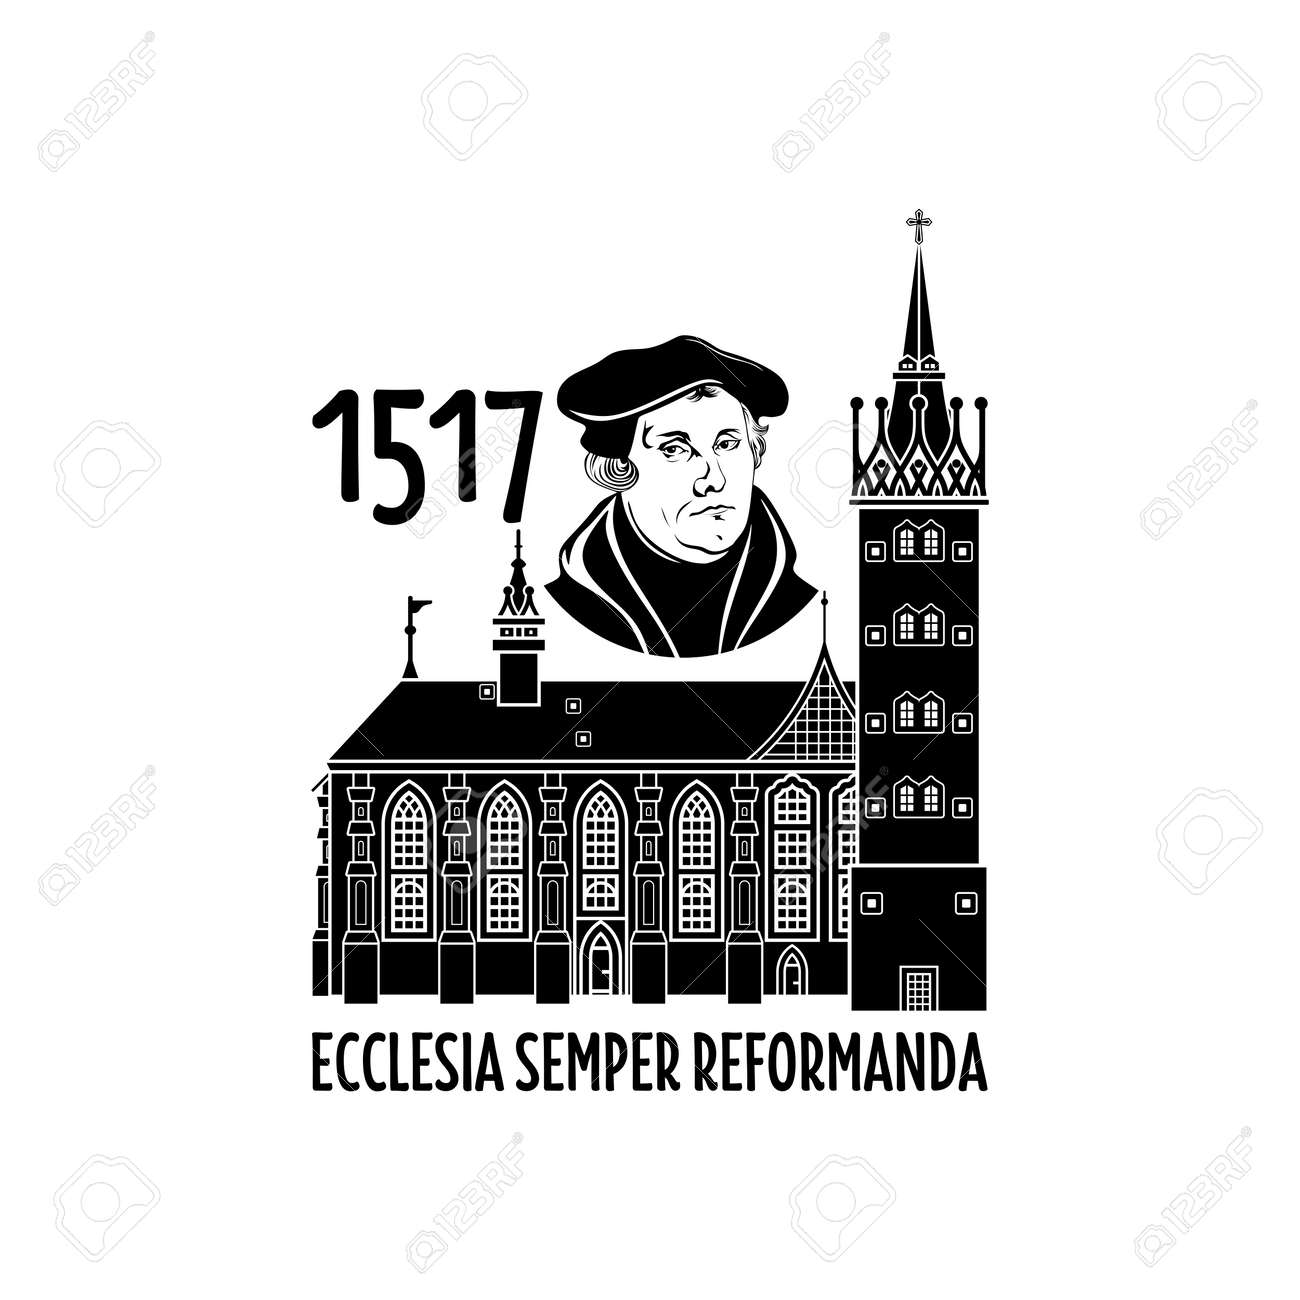 Martin Luther. 95 theses of the reformation of the church. Wittenberg 1517. - 166673456